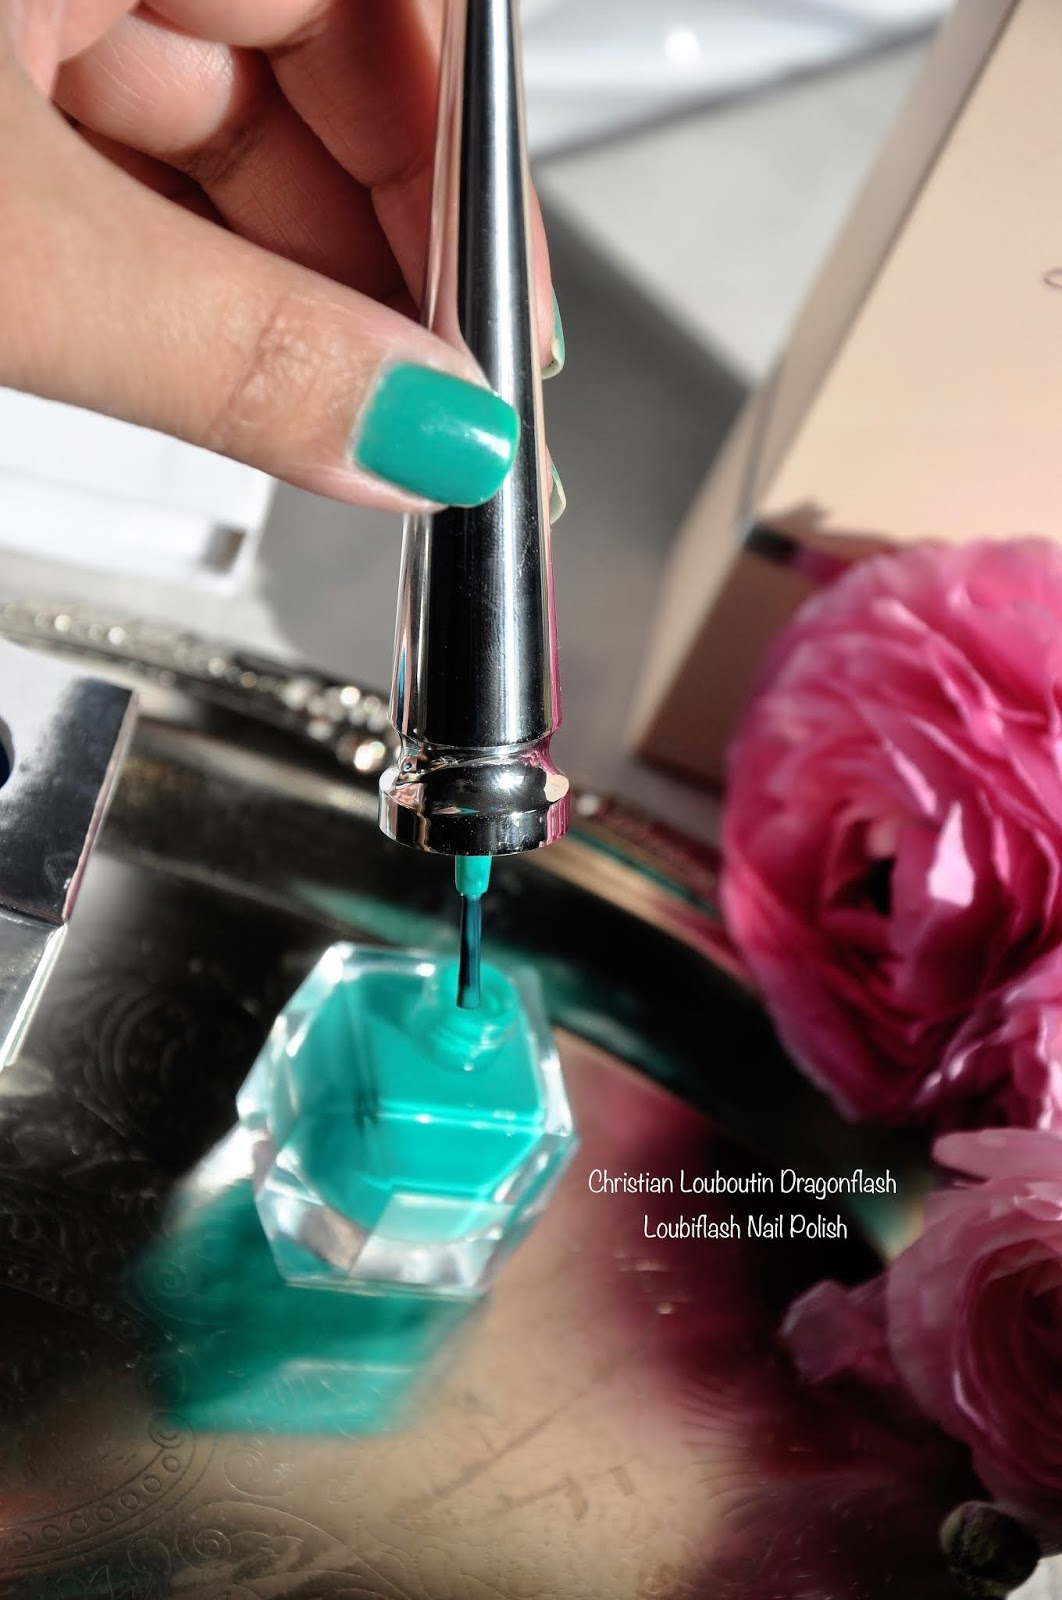 Christian Louboutin Loubiflash NailPolish Dragon Flash